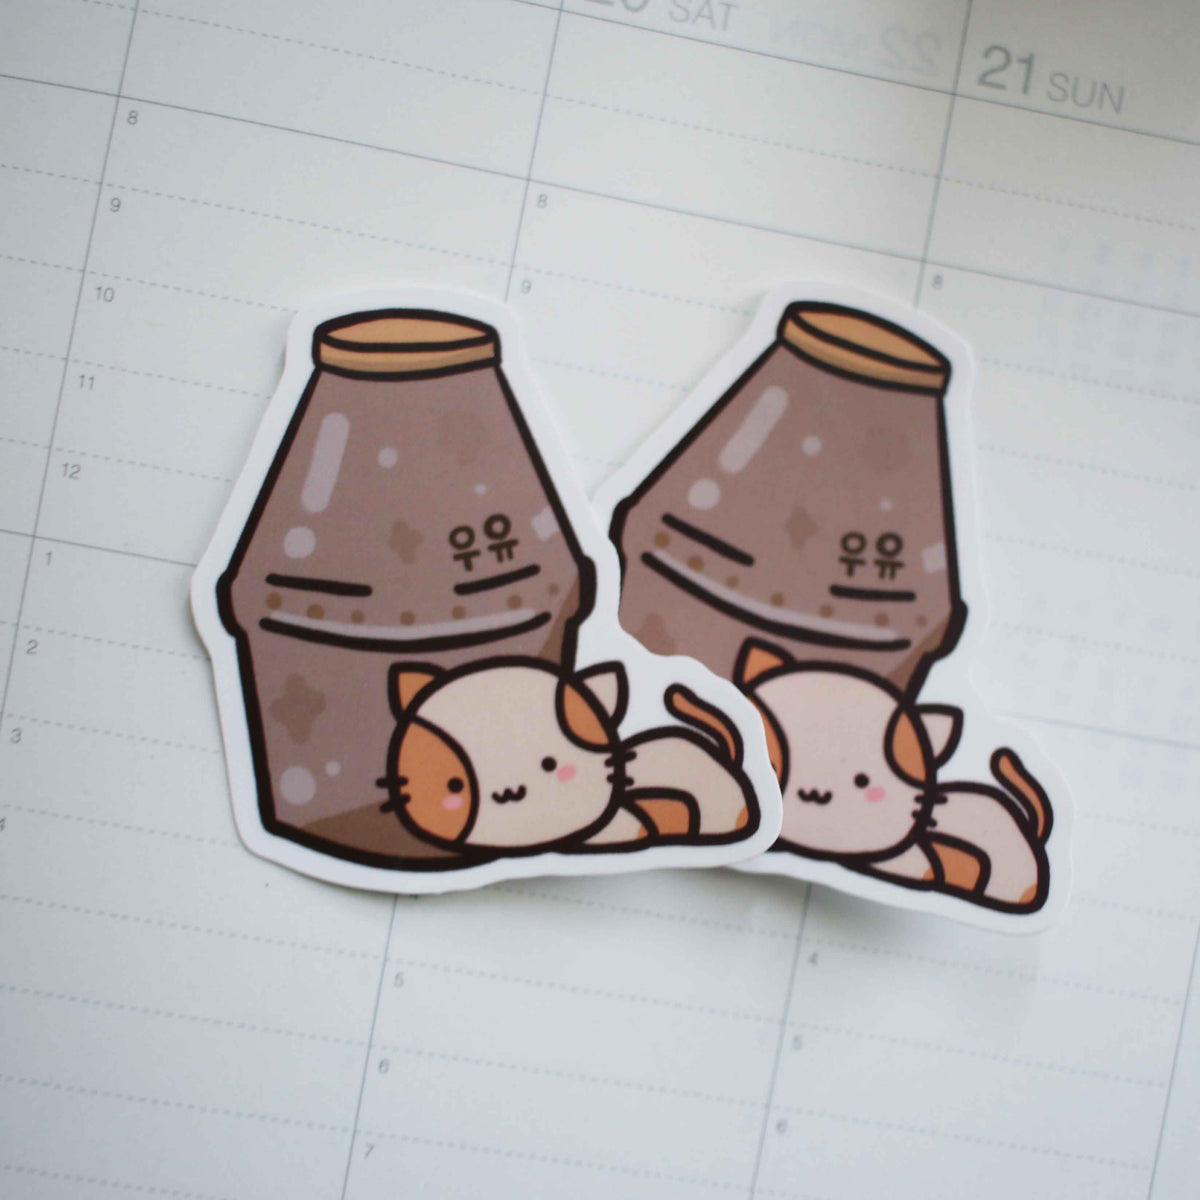 Momo Chocolate Milk Vinyl Sticker